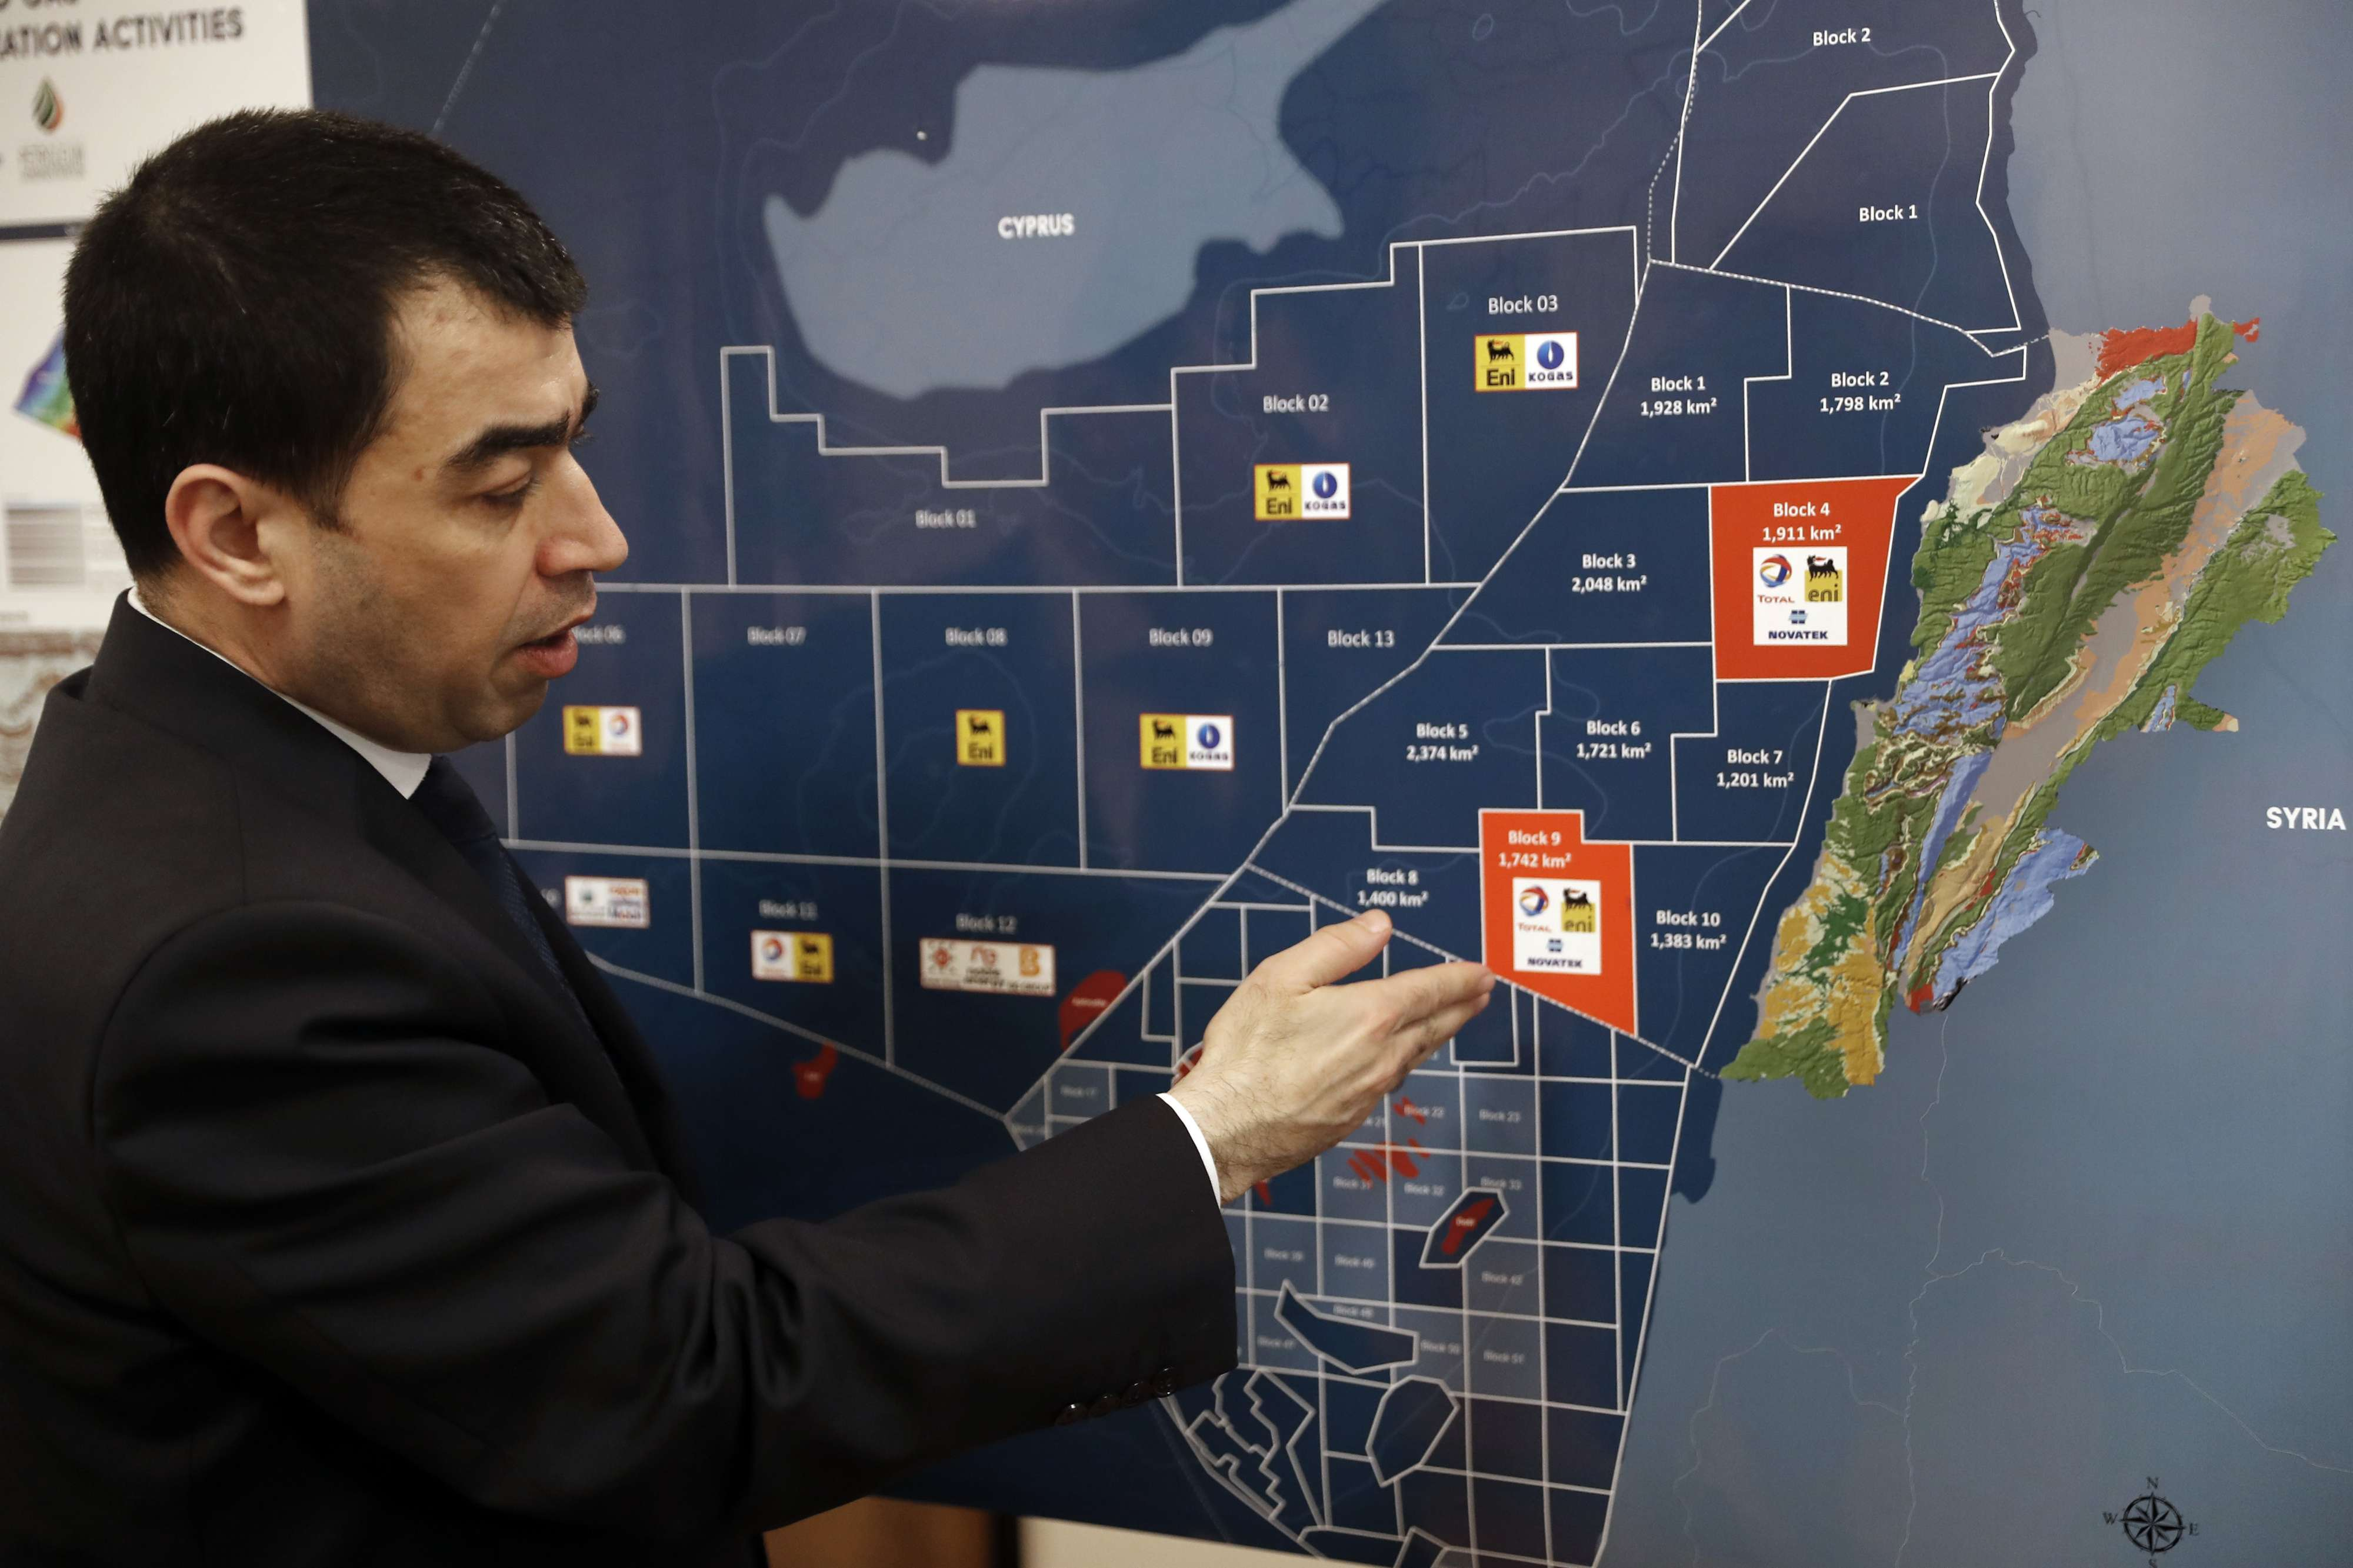 Lebanon's Energy Minister Cesar Abi Khalil points to a map as he speaks about the offshore Block 9 during an interview in Beirut, on February 1. (AP)